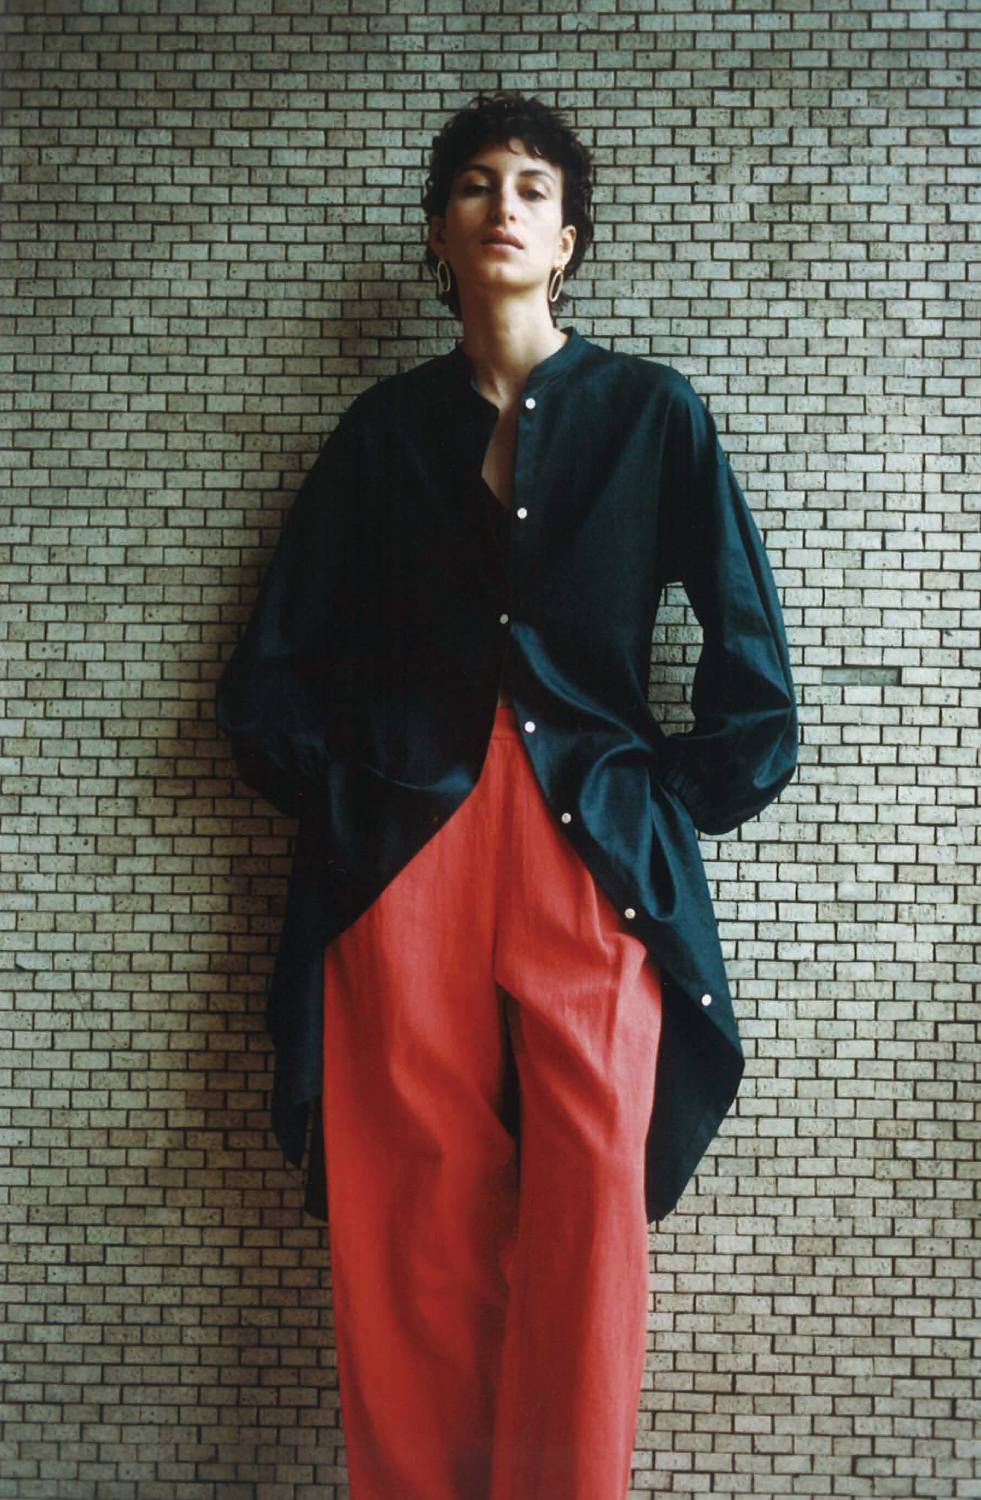 【WOMEN'S 2020 SS】-HOUSE OF A WOMAN- アイテム